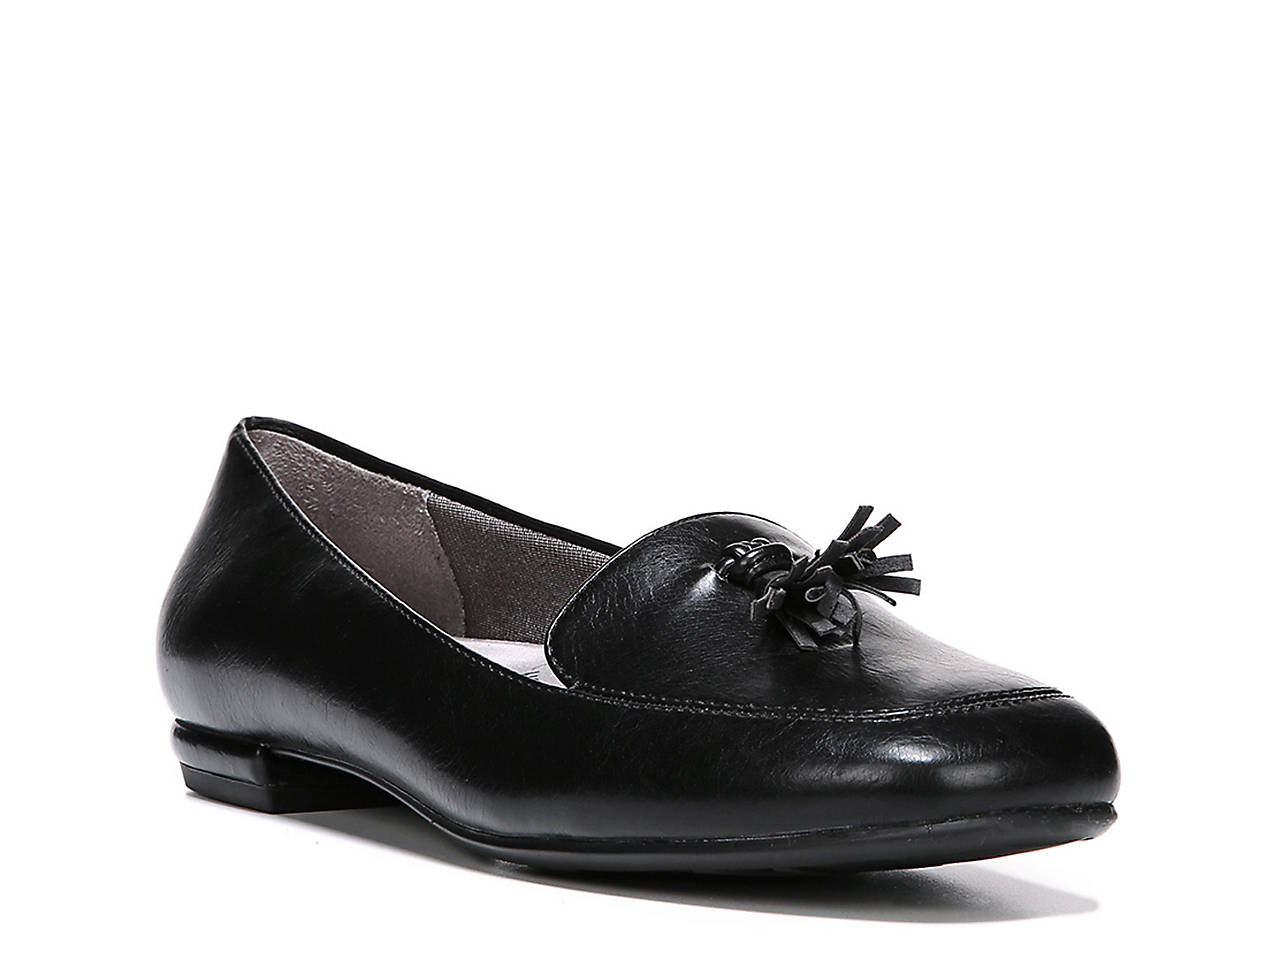 e2c13fcaa9f LifeStride Ballad Loafer Women s Shoes